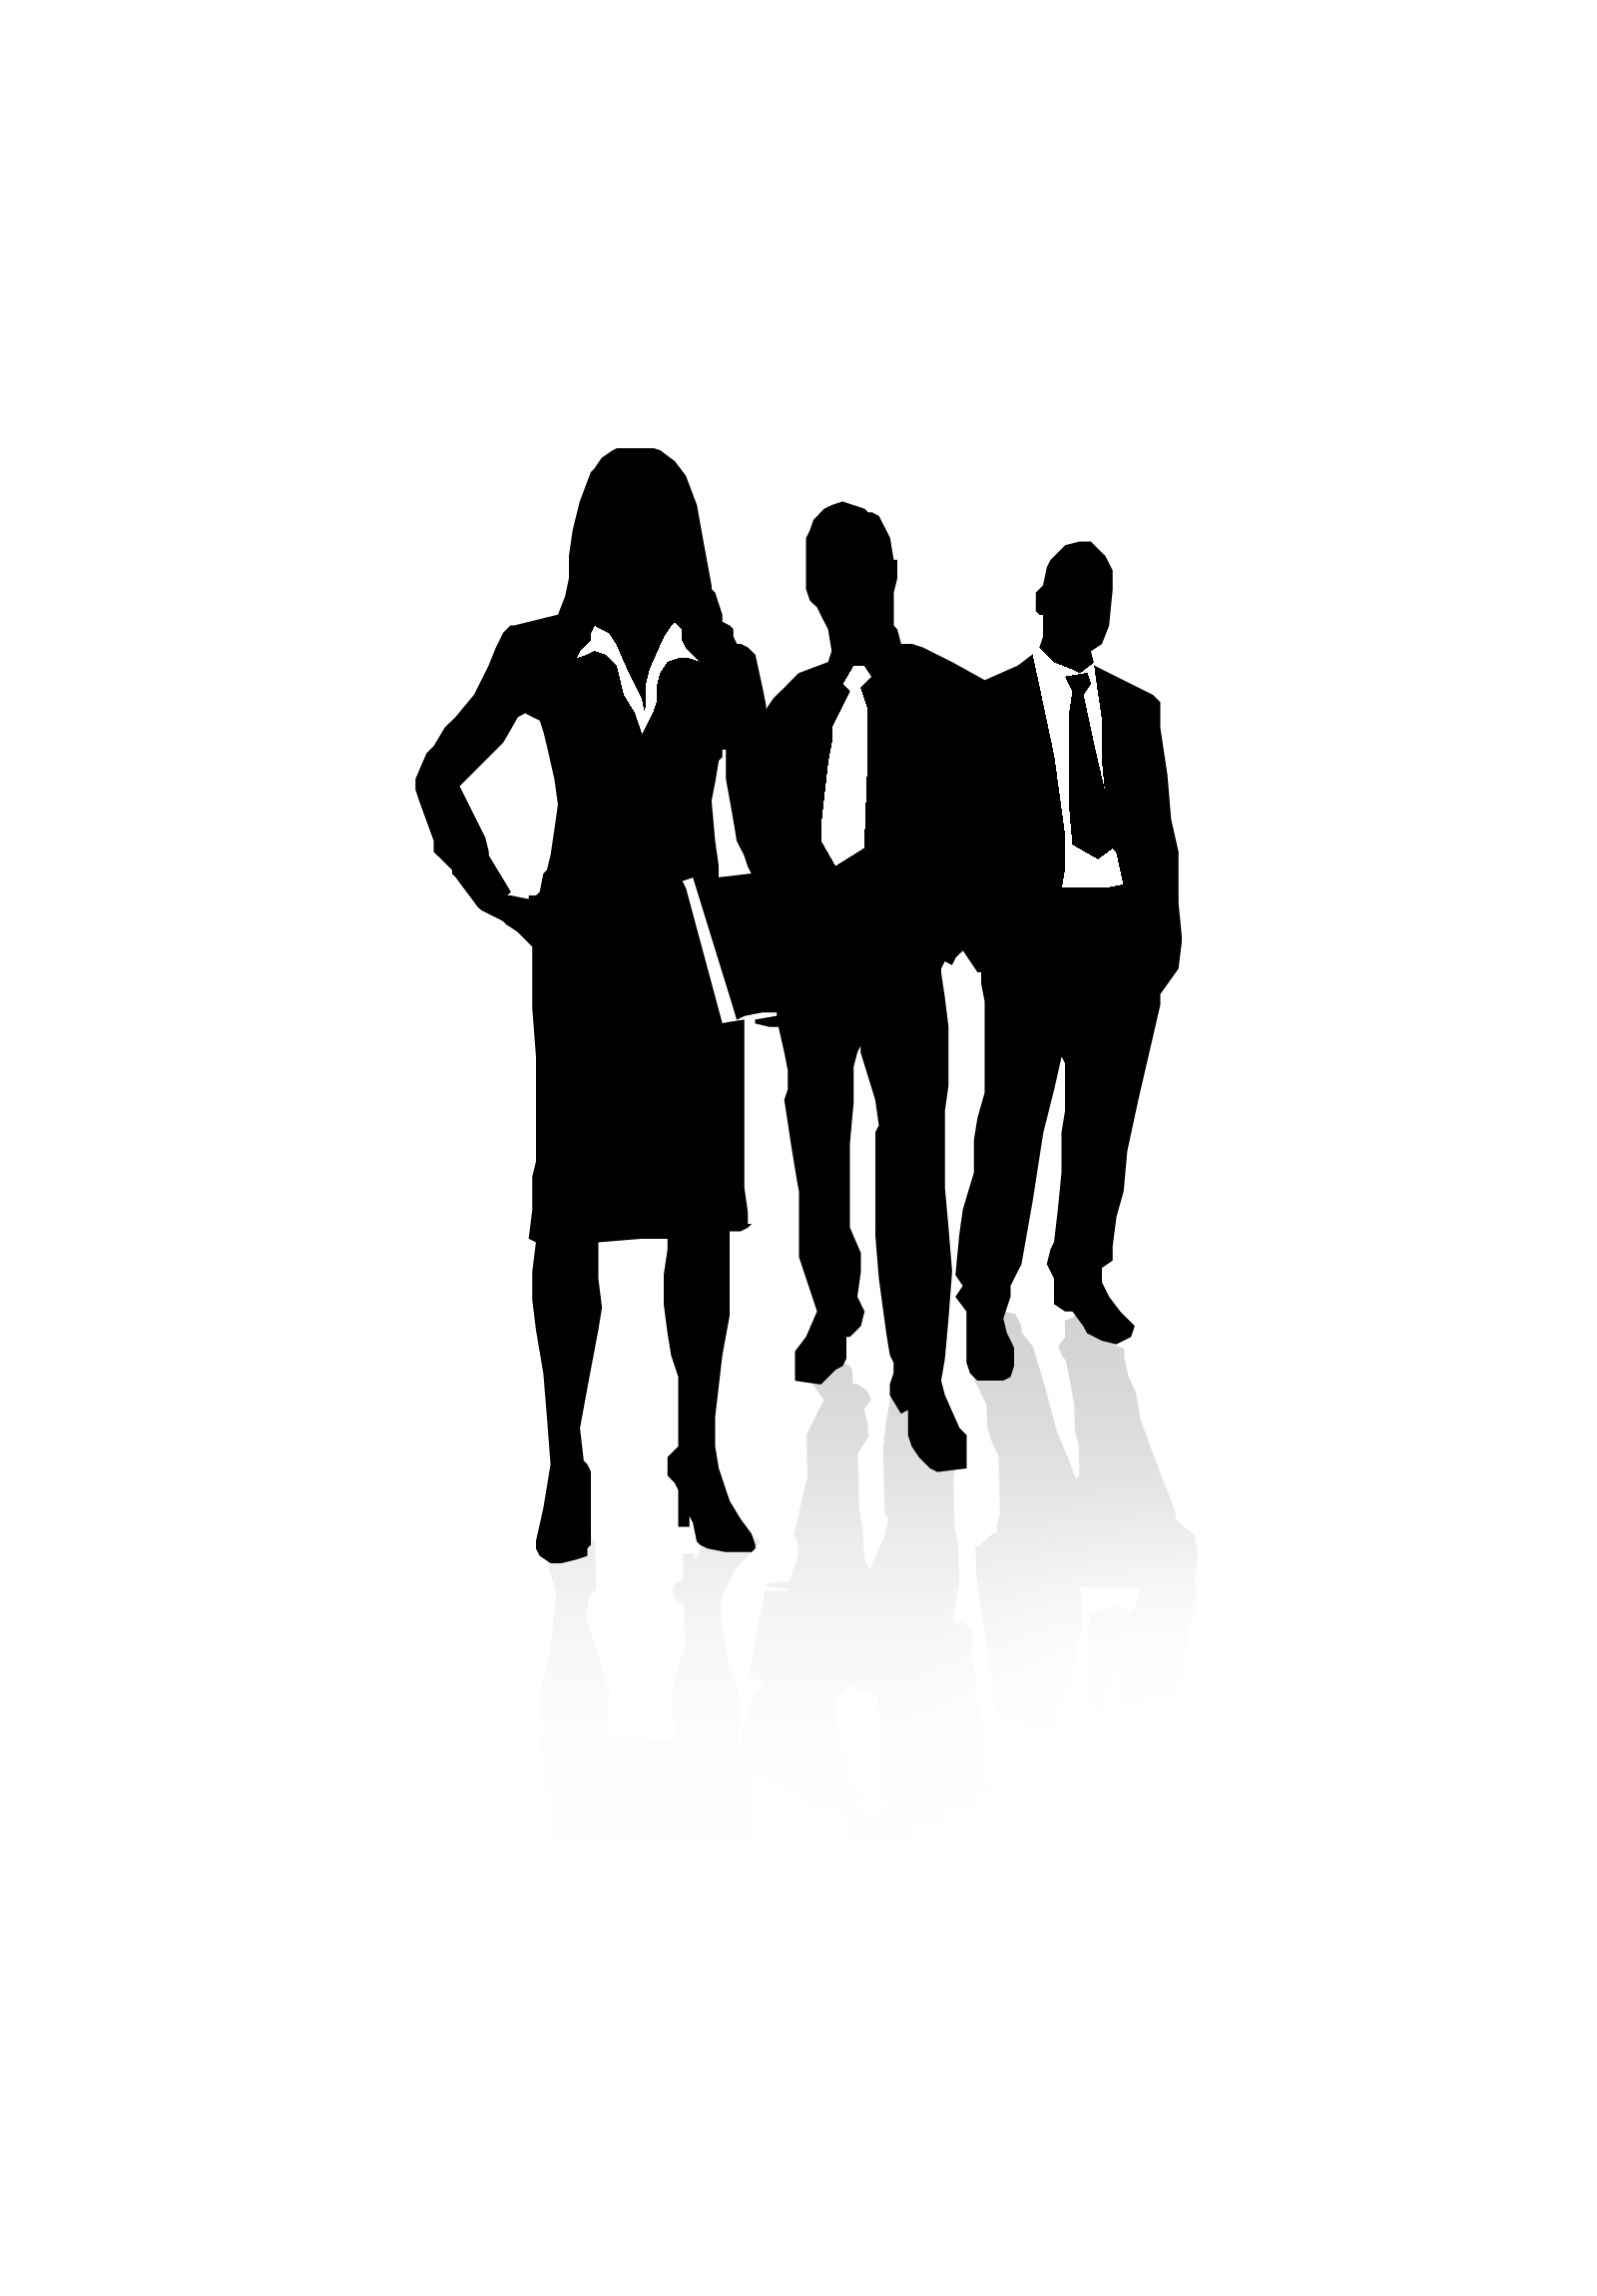 Business people images clipart